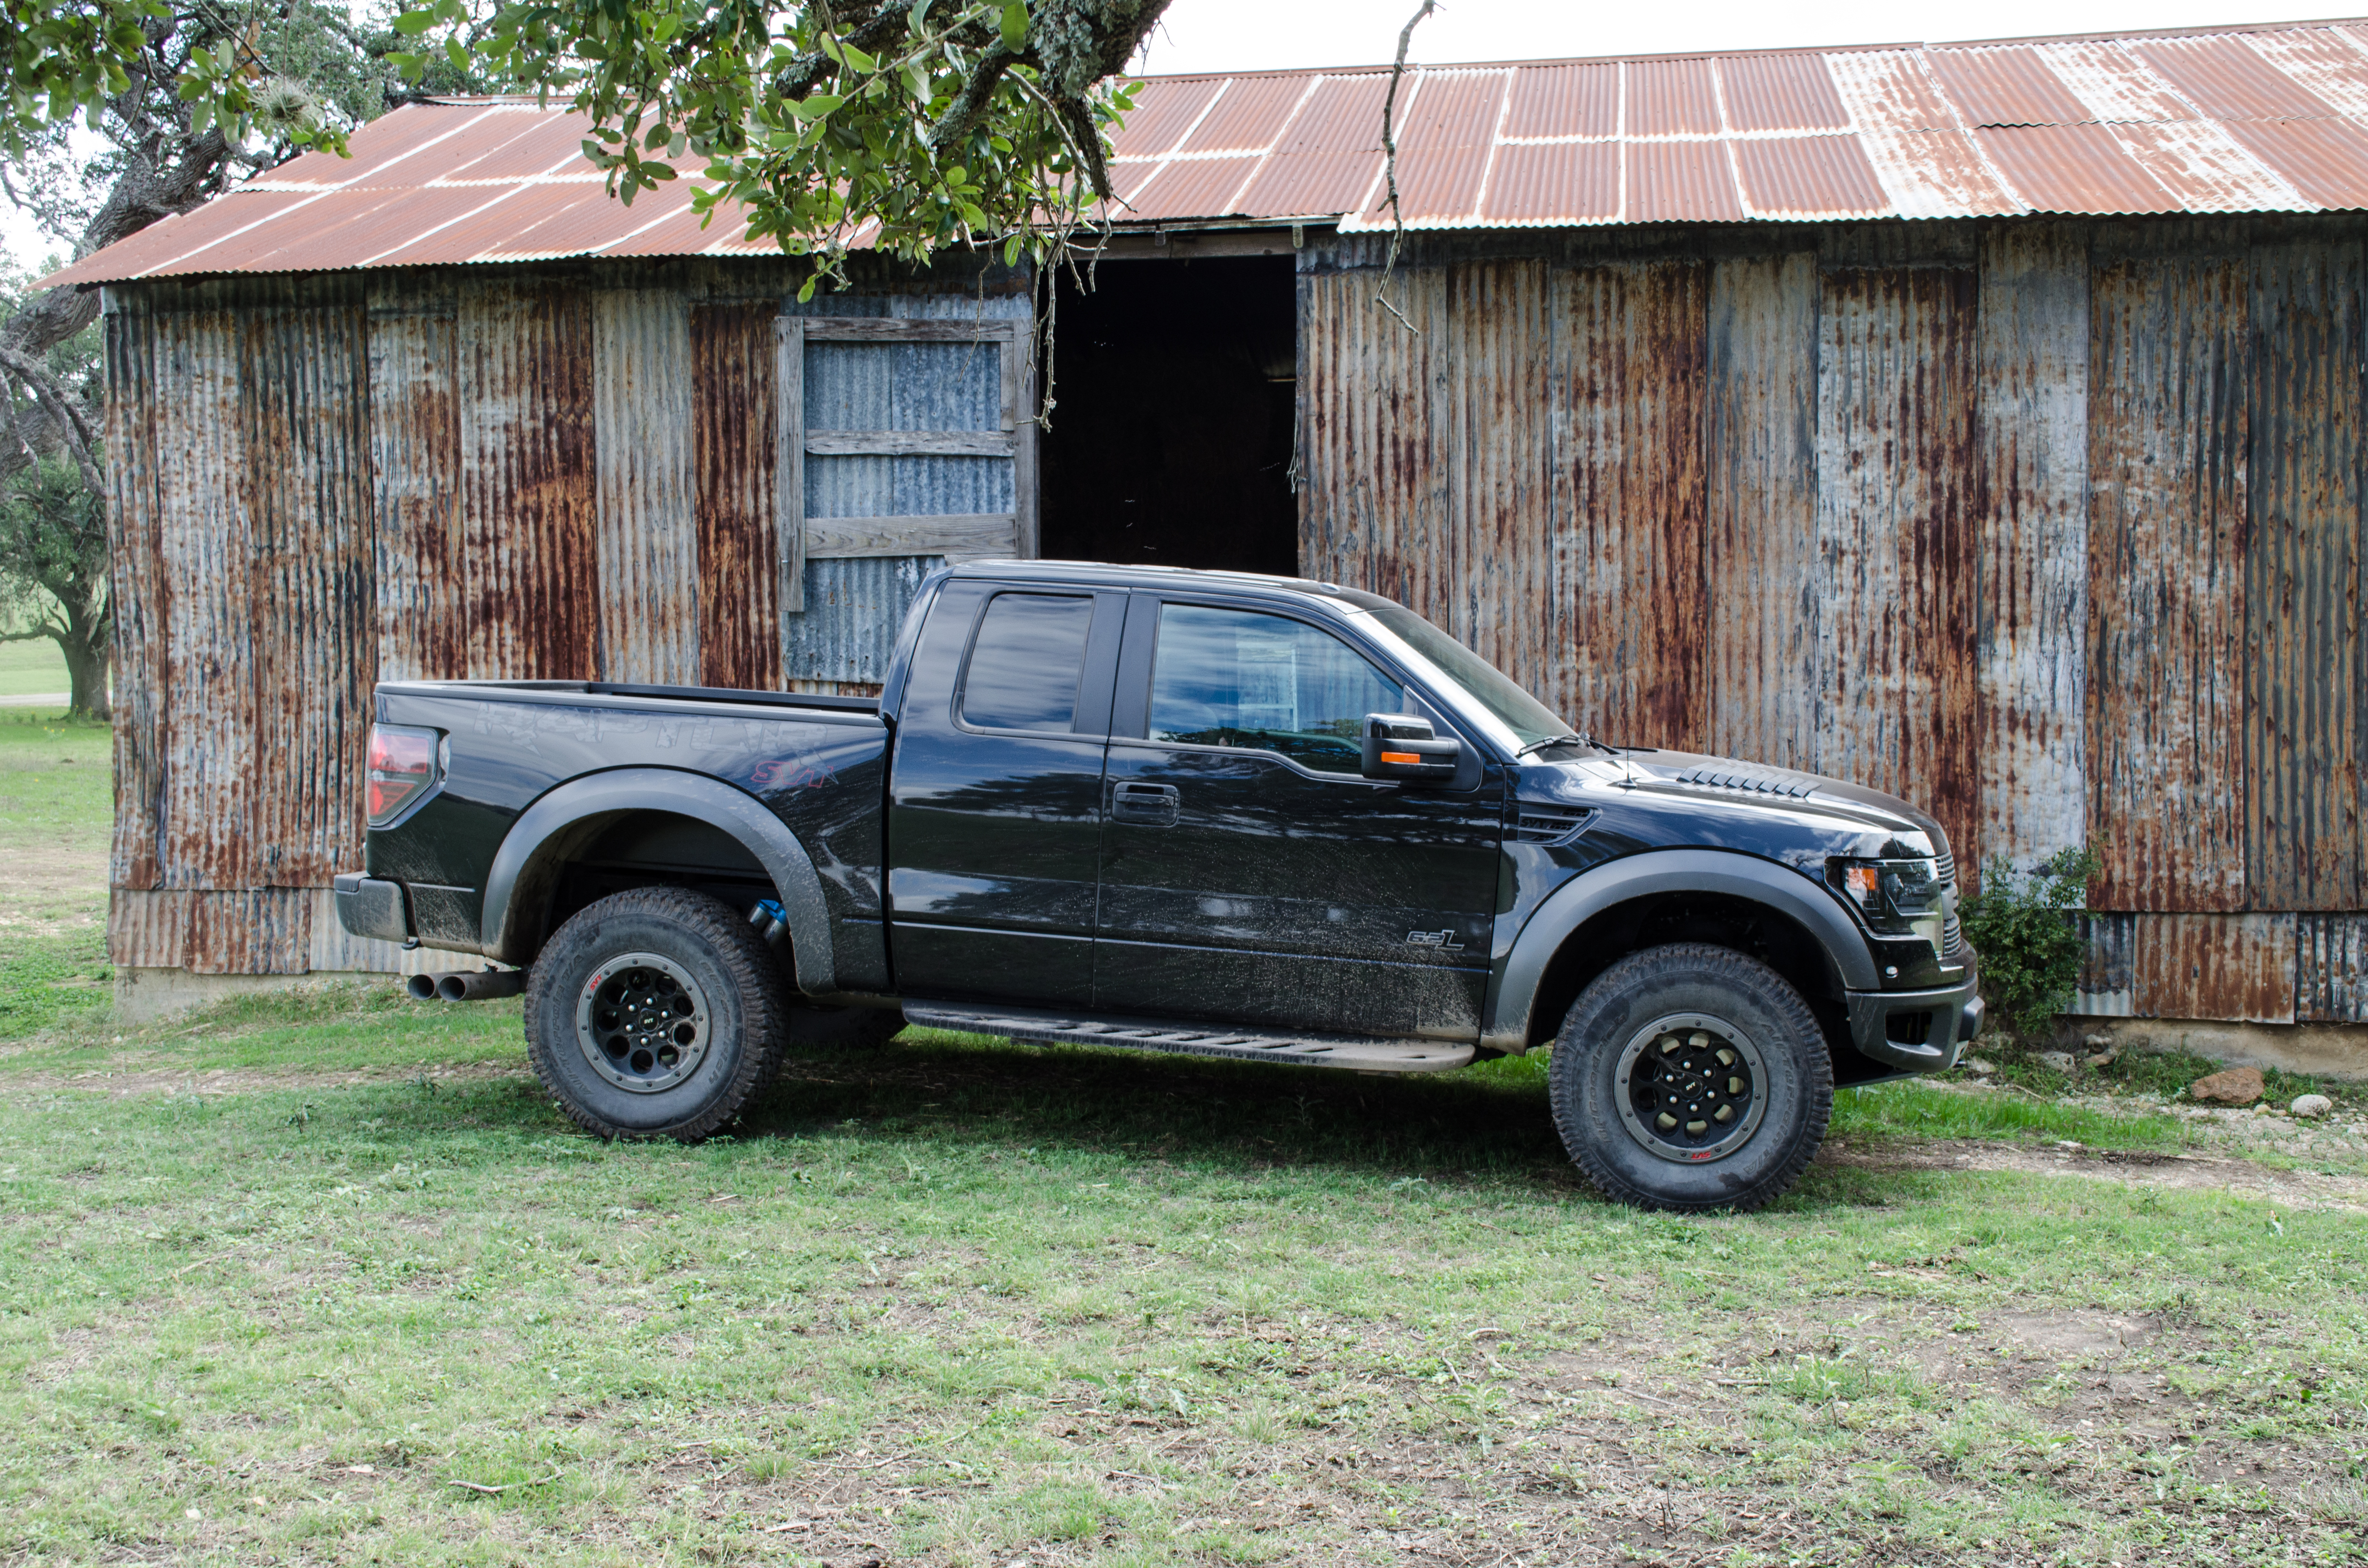 raptor the special edition - 2014 F 150 Svt Raptor Special Edition